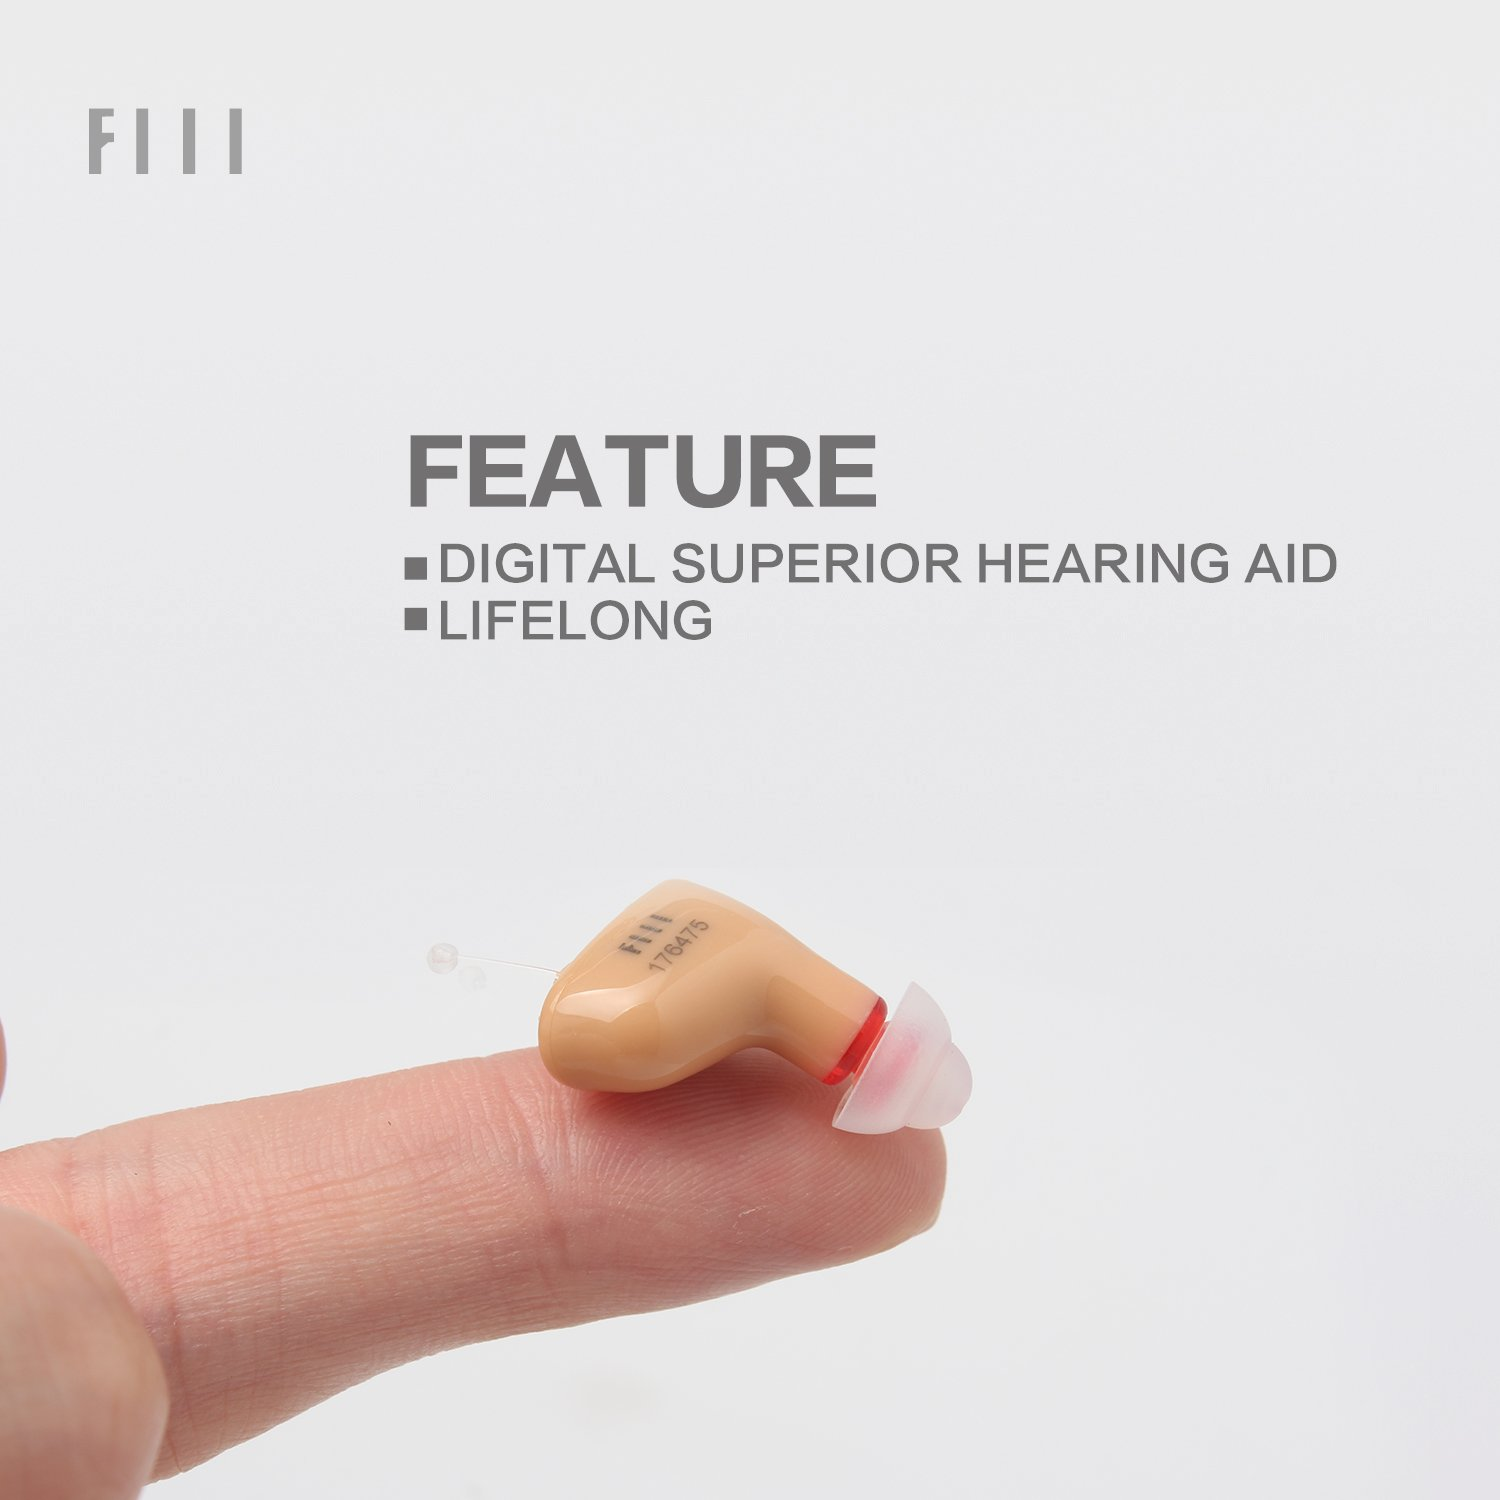 FIIL Hearing Amplifier Sound Amplifier in Ear Mini Portable Left Ear Right Ear Volume Adjustable Noise Reduction Audiologist Designed Intelligent (Right)